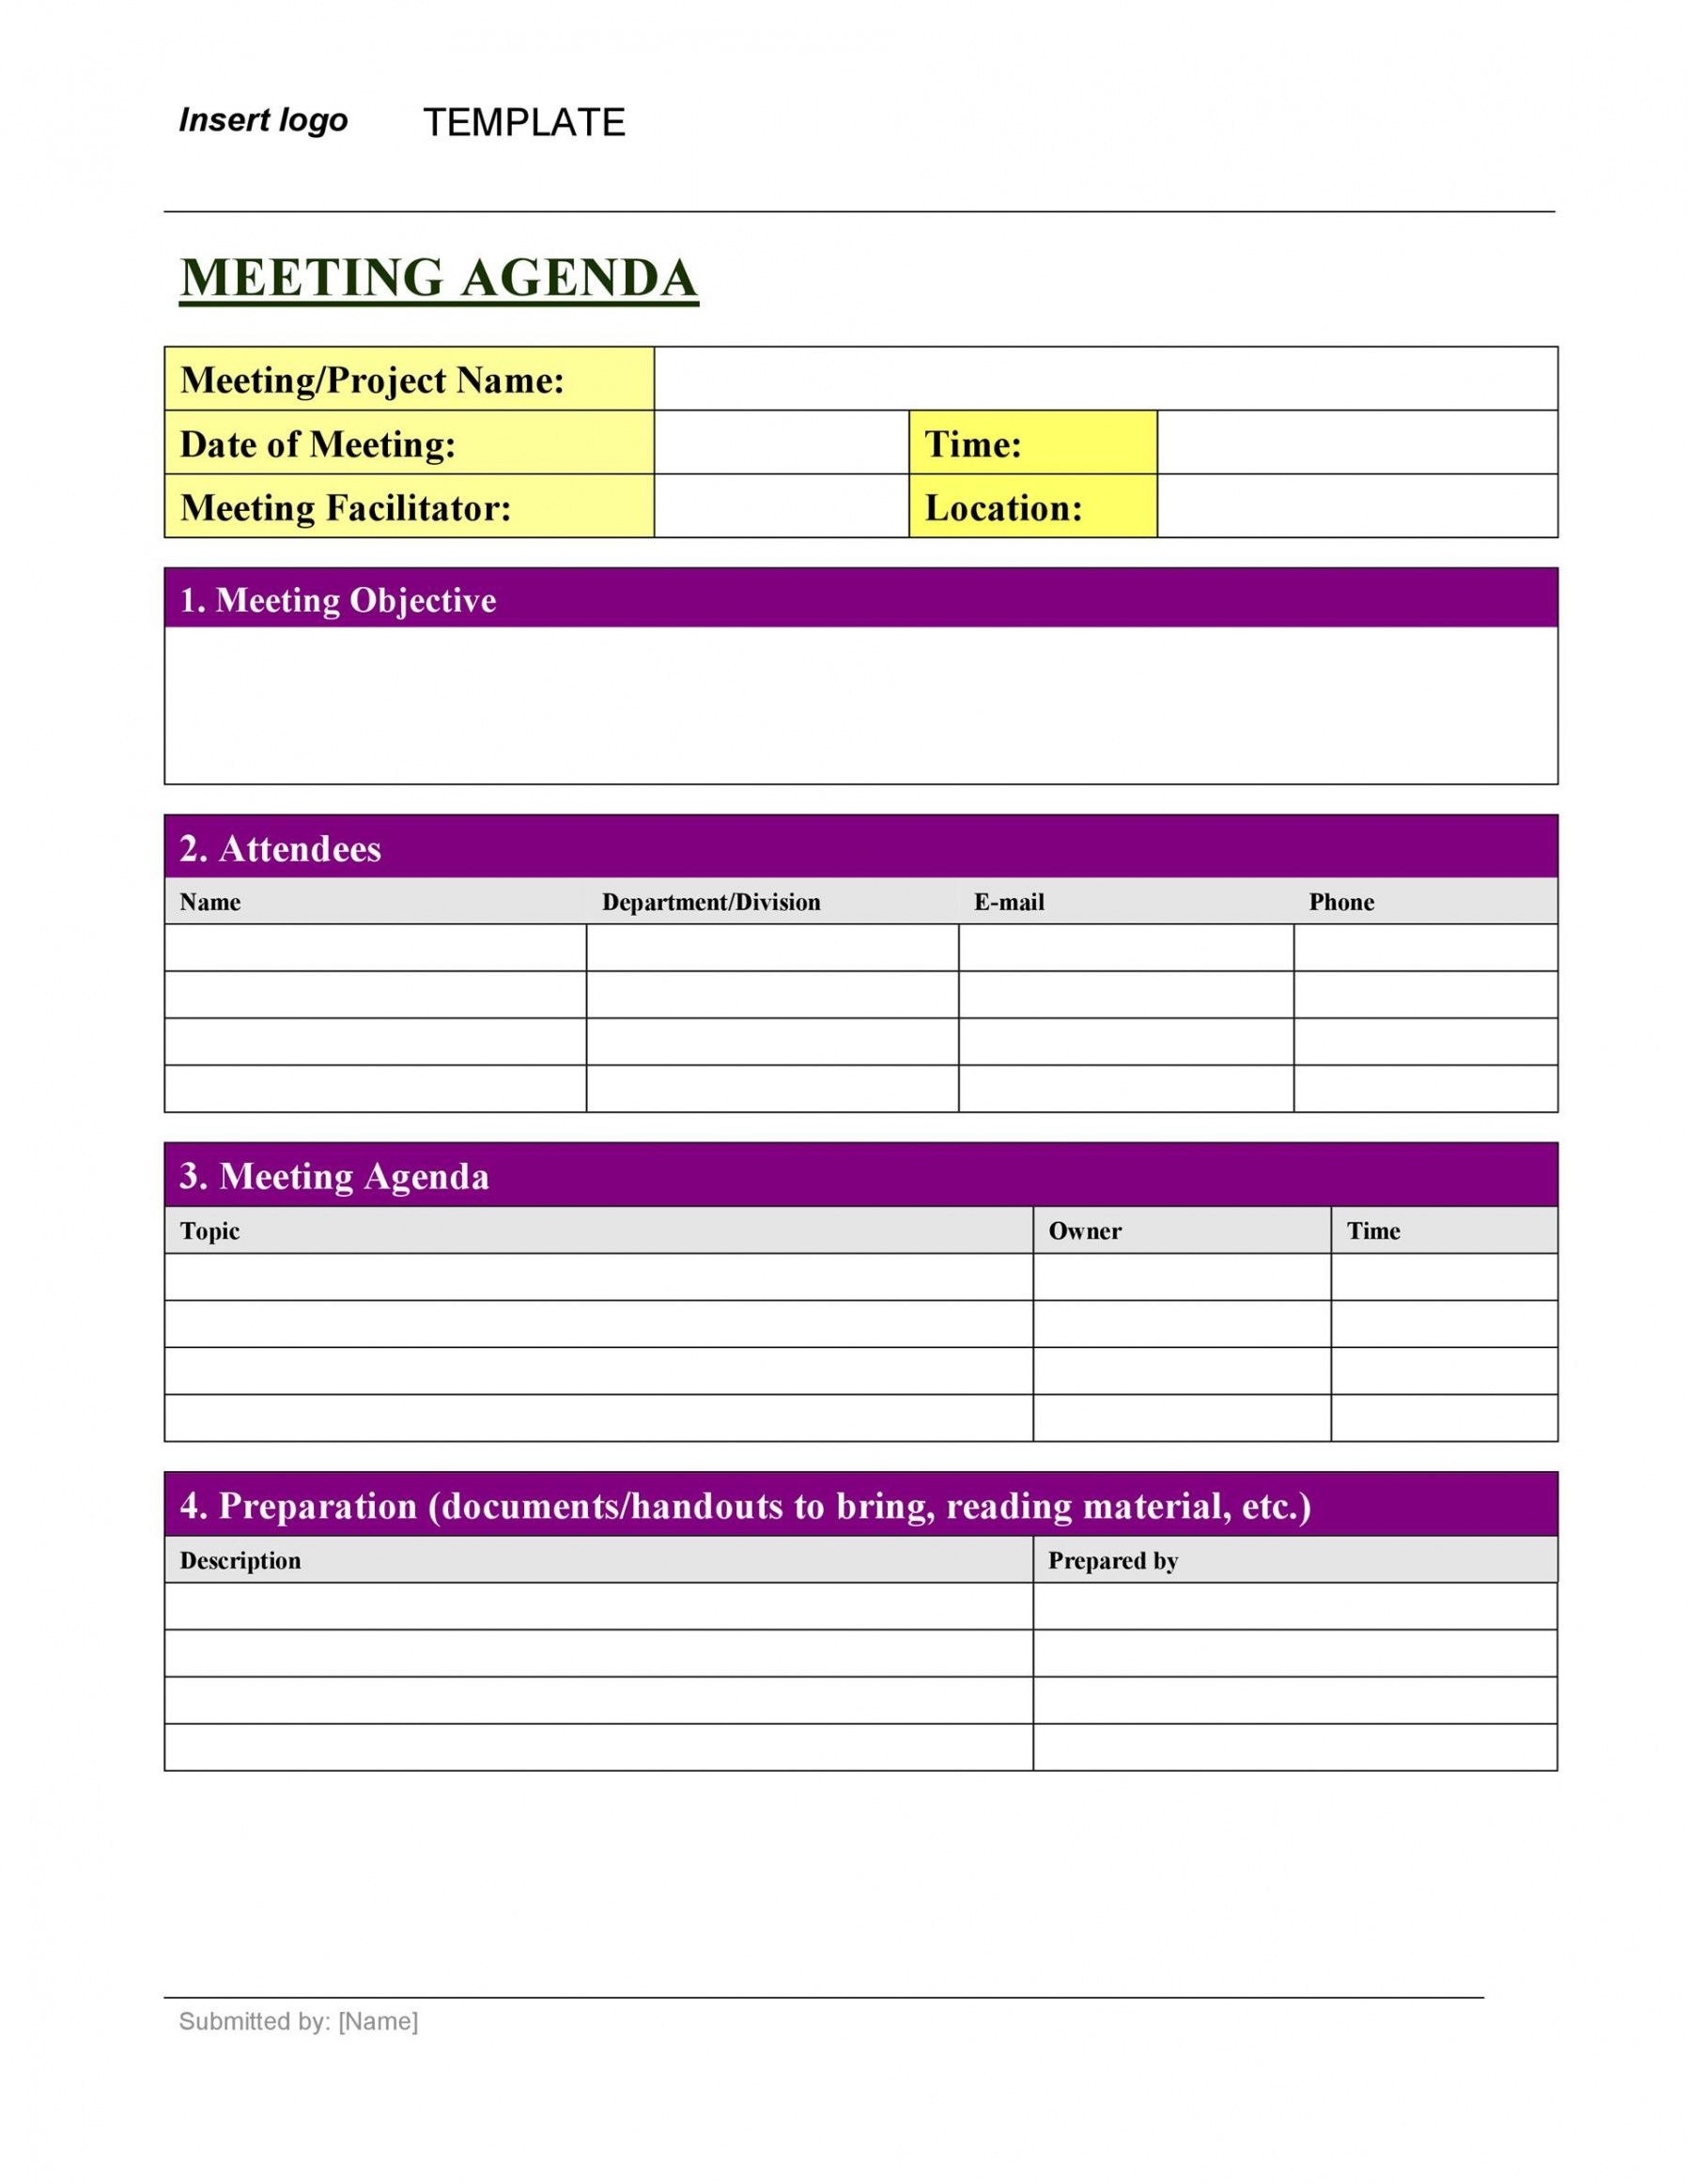 Template For Meeting Agenda And Minutes